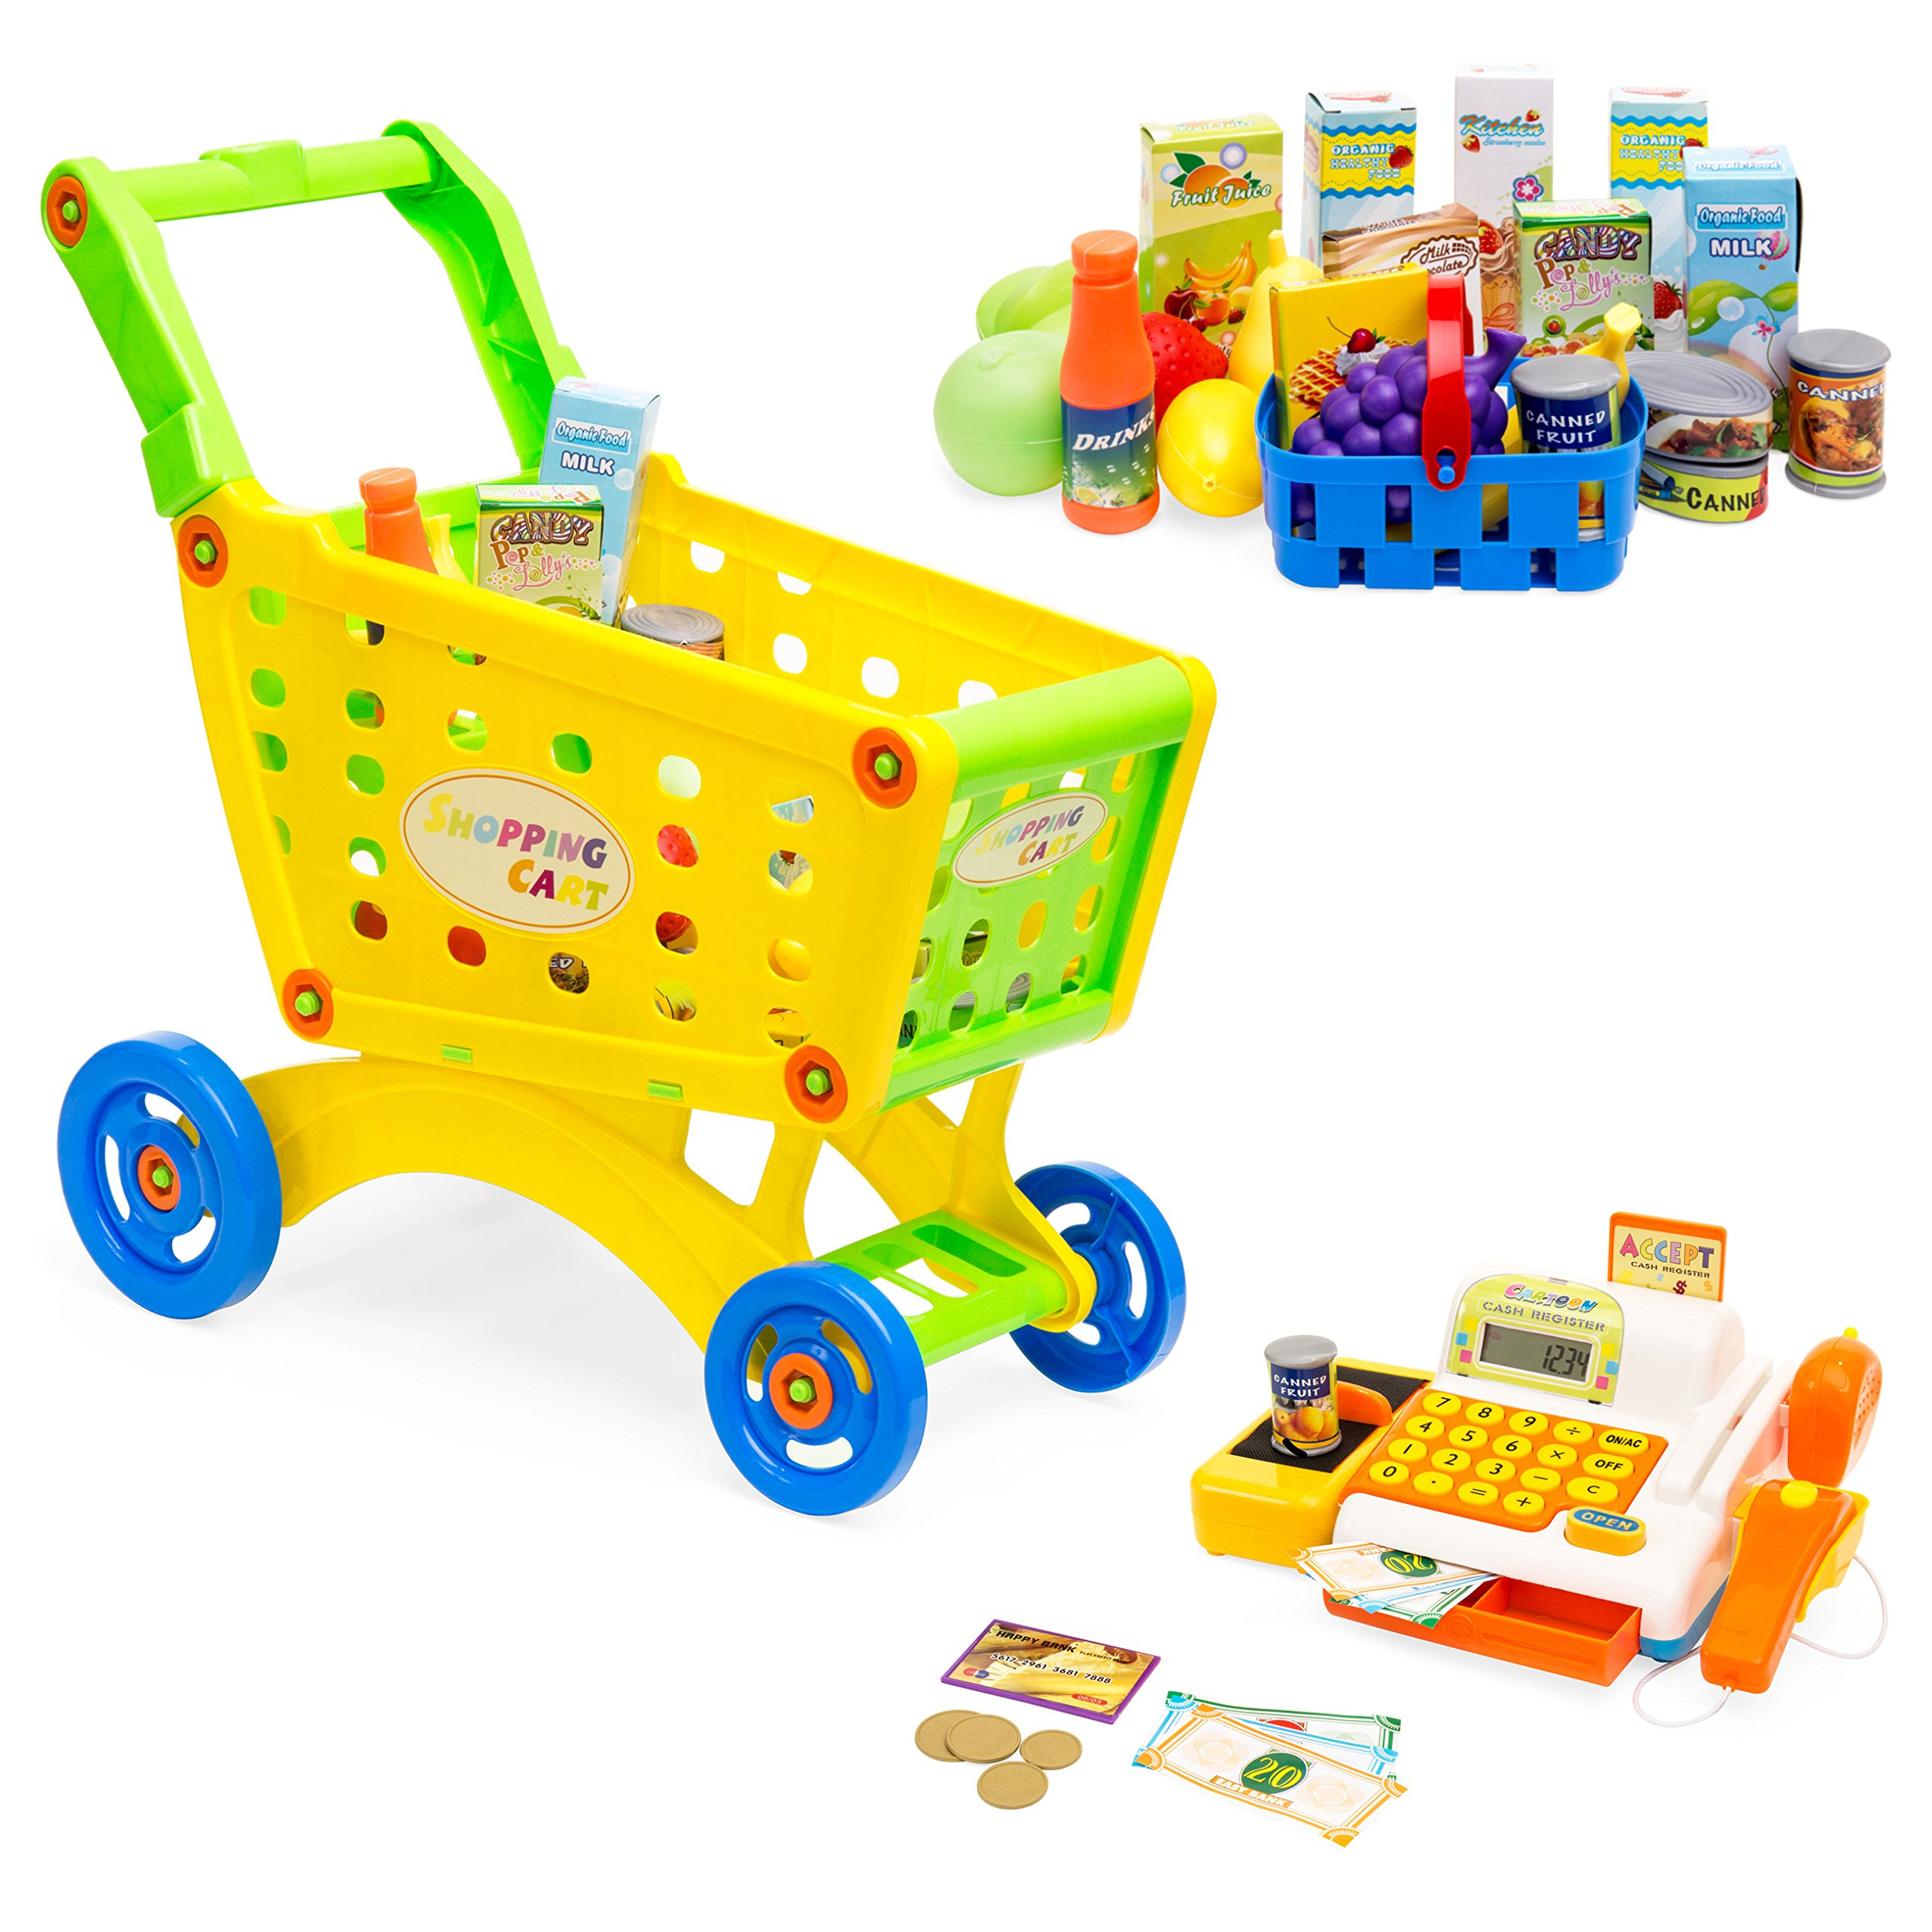 Best Choice Products 27-Piece Grocery Store Playset with Cash Register, Plastic Food and Play Money